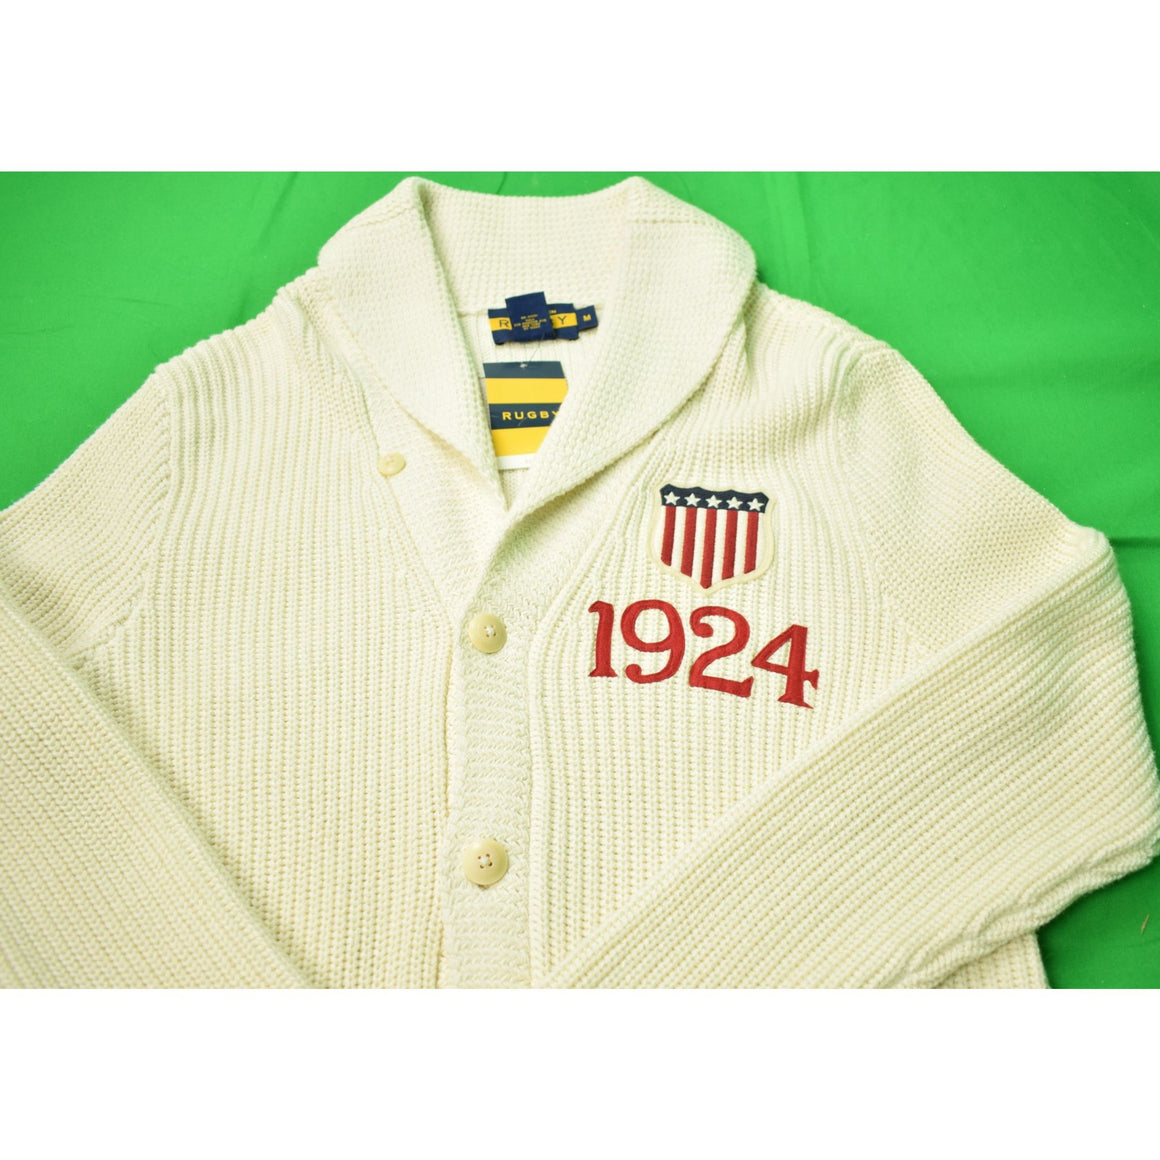 Rugby Ralph Lauren Cardigan w/ 1924 Olympic Crest Sweater Sz M